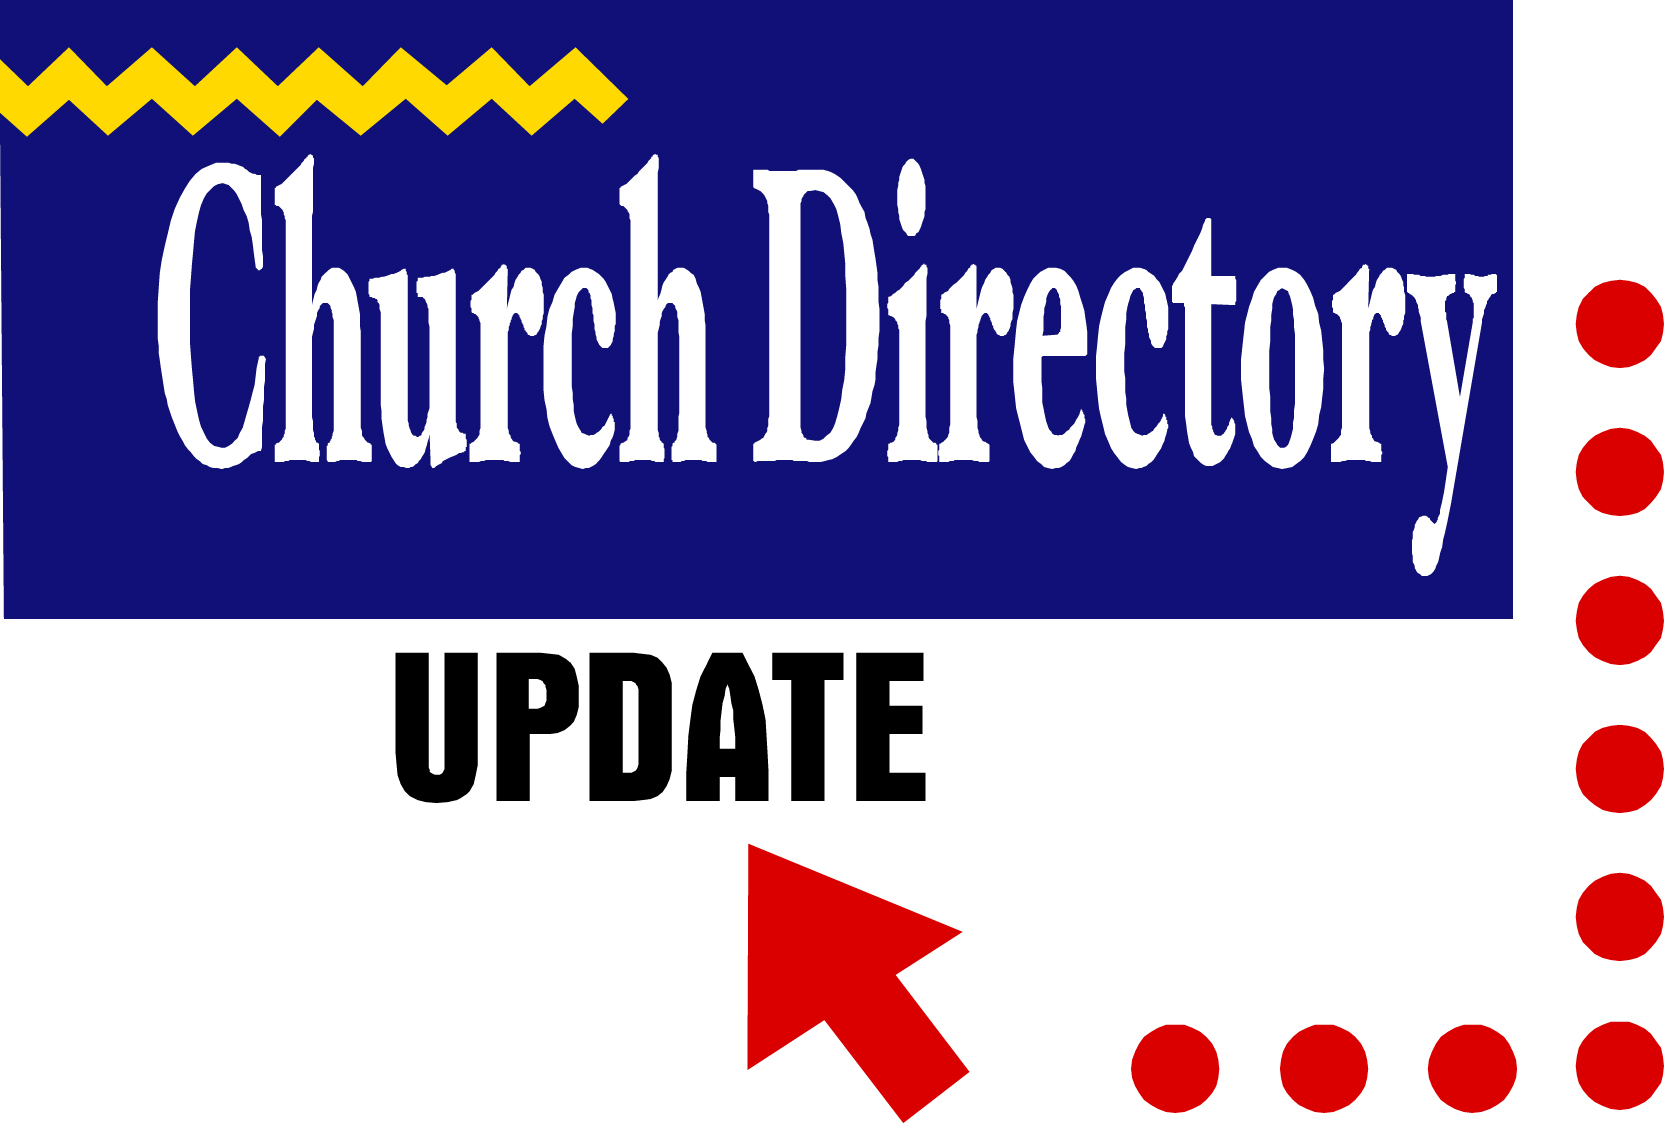 The contact list for church members and regular attendees has been